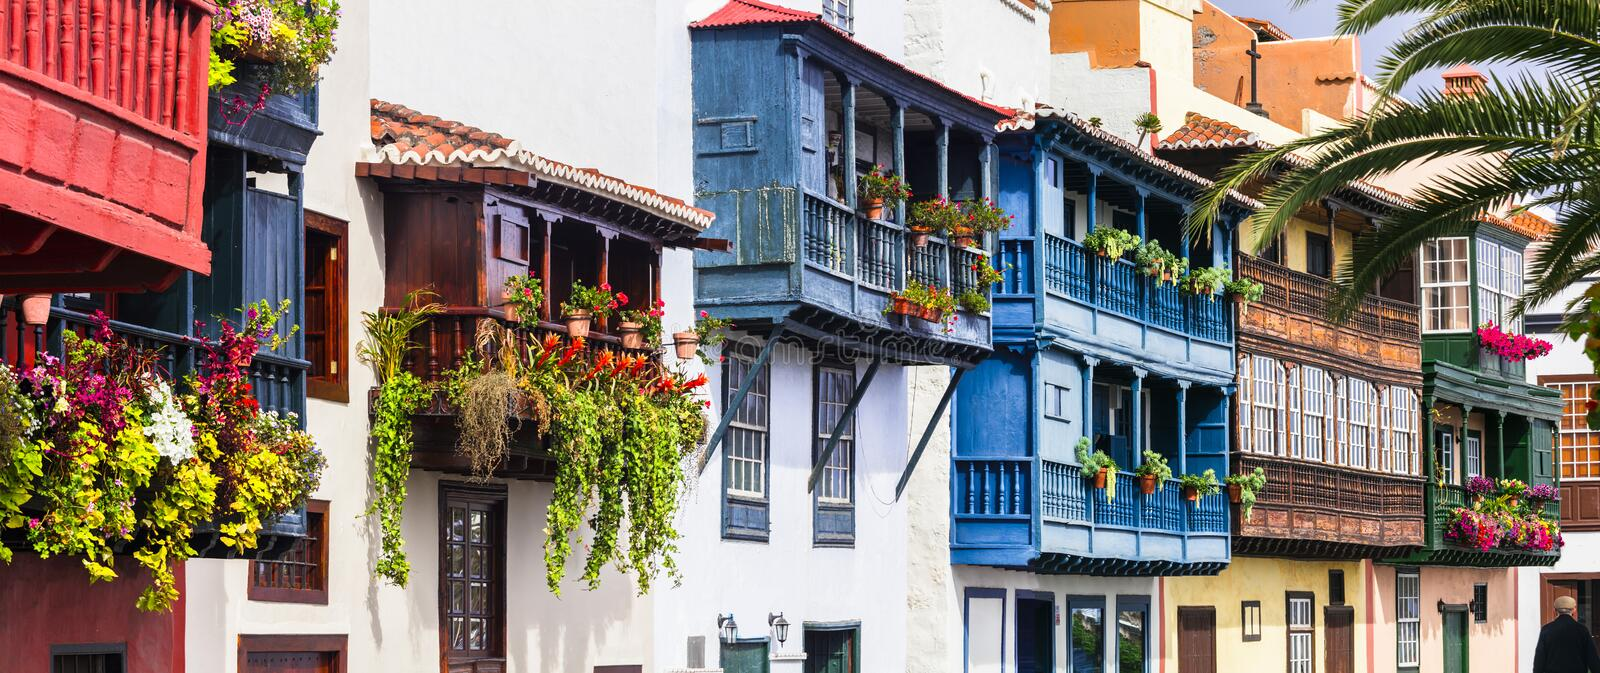 Traditional colonial architecture of Canary islands . capital of La palma - Santa Cruz with colorful balconies royalty free stock image